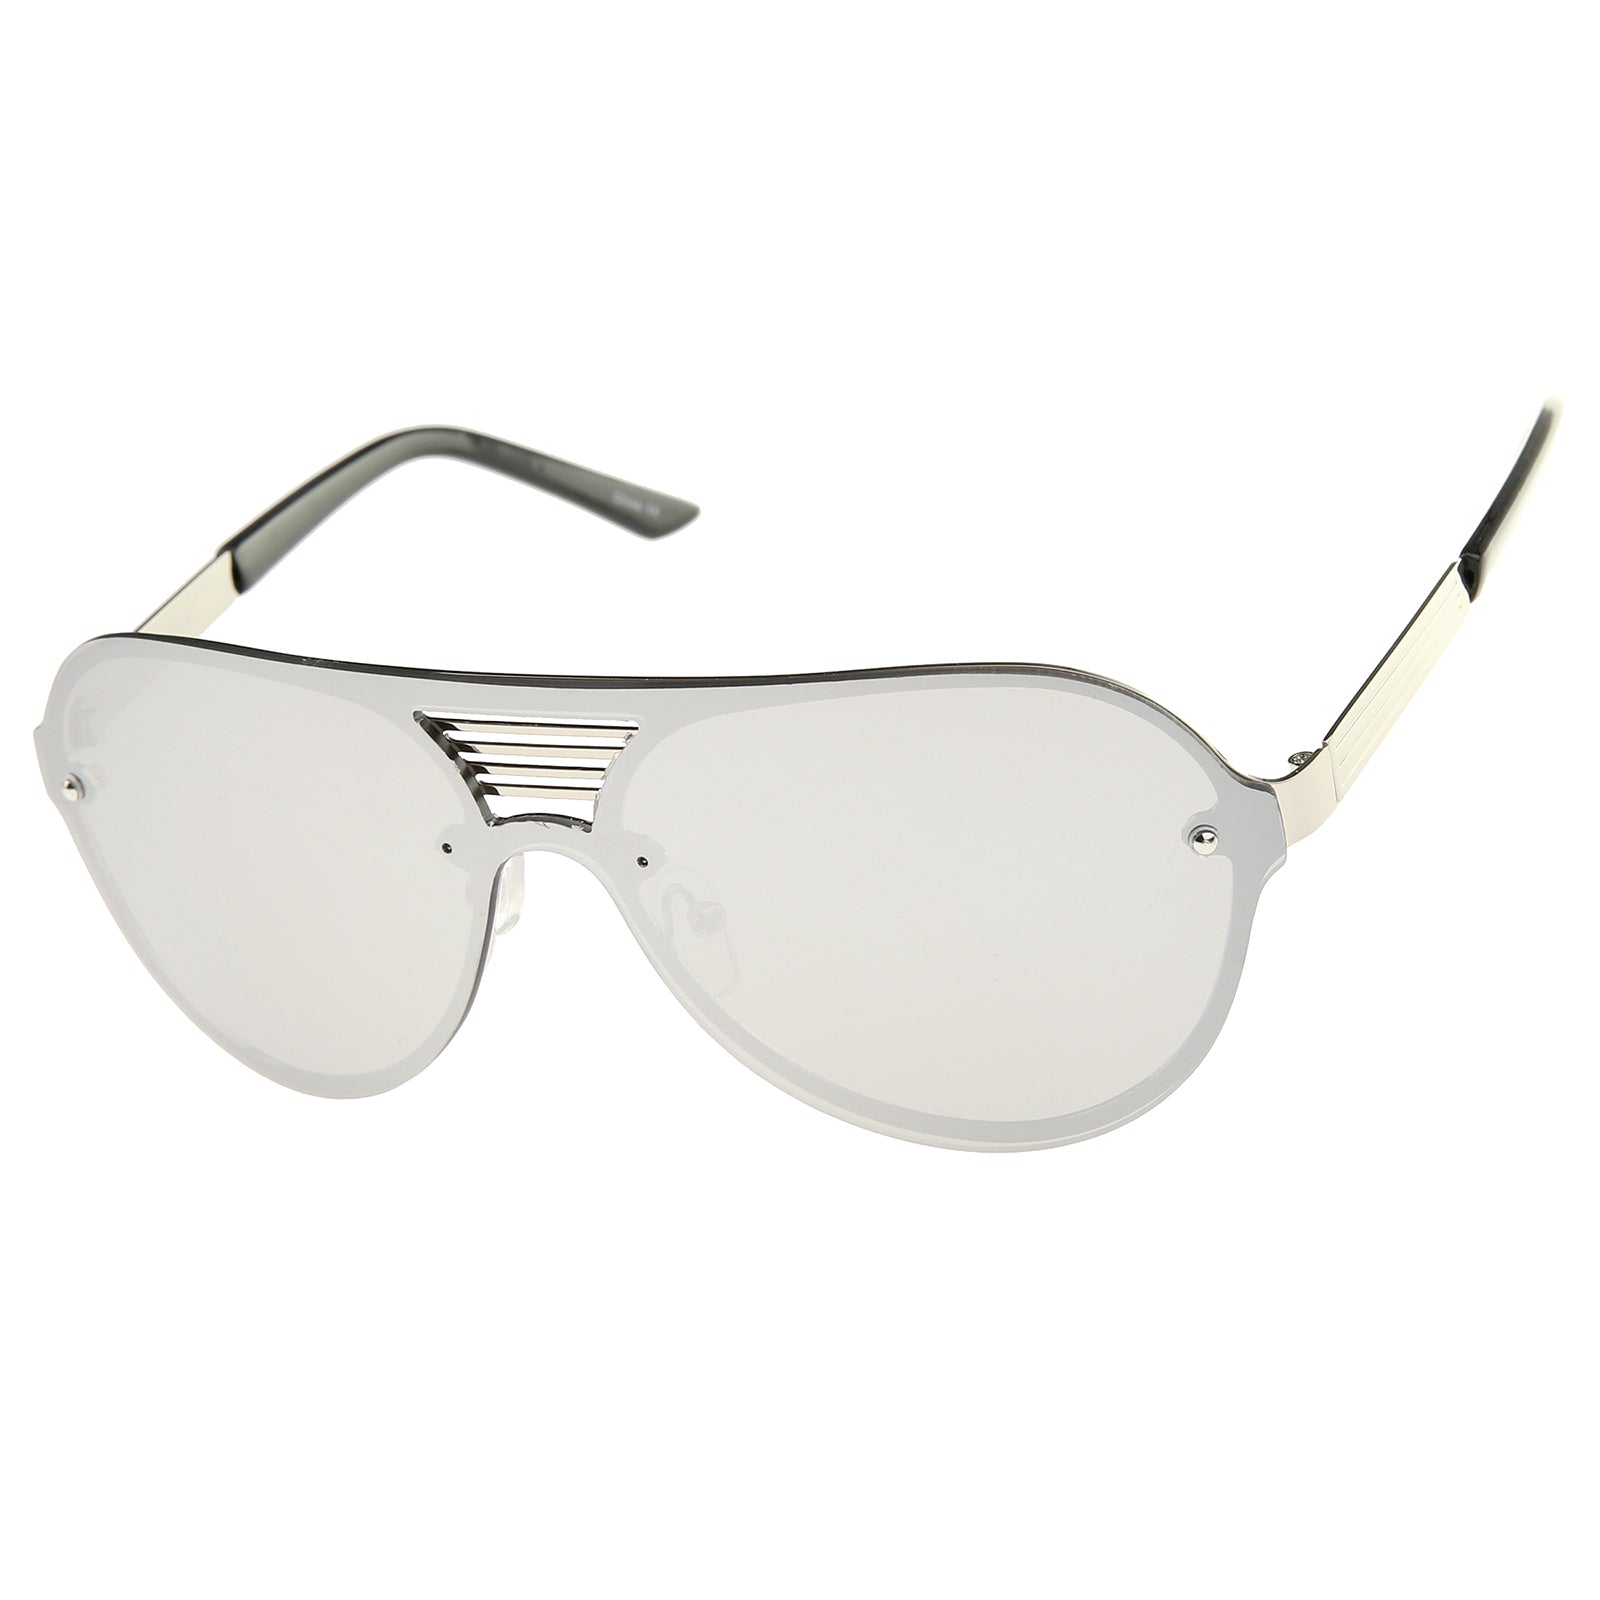 Rimless Flat Top Metal Temple Iridescent Mirror Lens Aviator Sunglasses 59mm - sunglass.la - 2